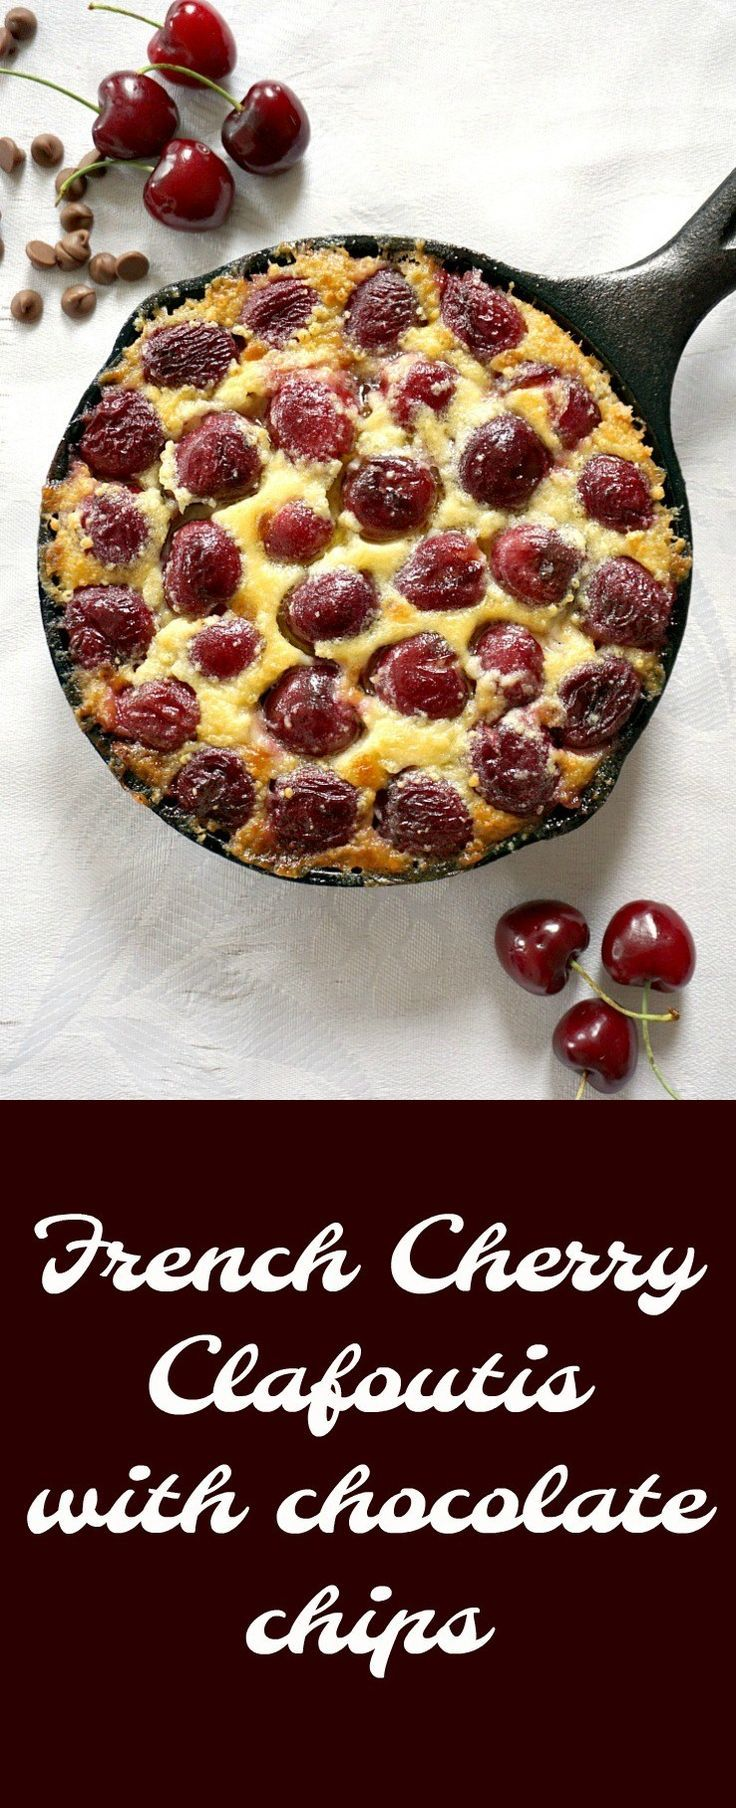 French Cherry Clafoutis recipe with chocolate chips, my take on the famous summer dessert. With a delicate almond custard-like taste and texture, this easy cherry clafoutis is one of those quick easy desserts that never fail to impress.